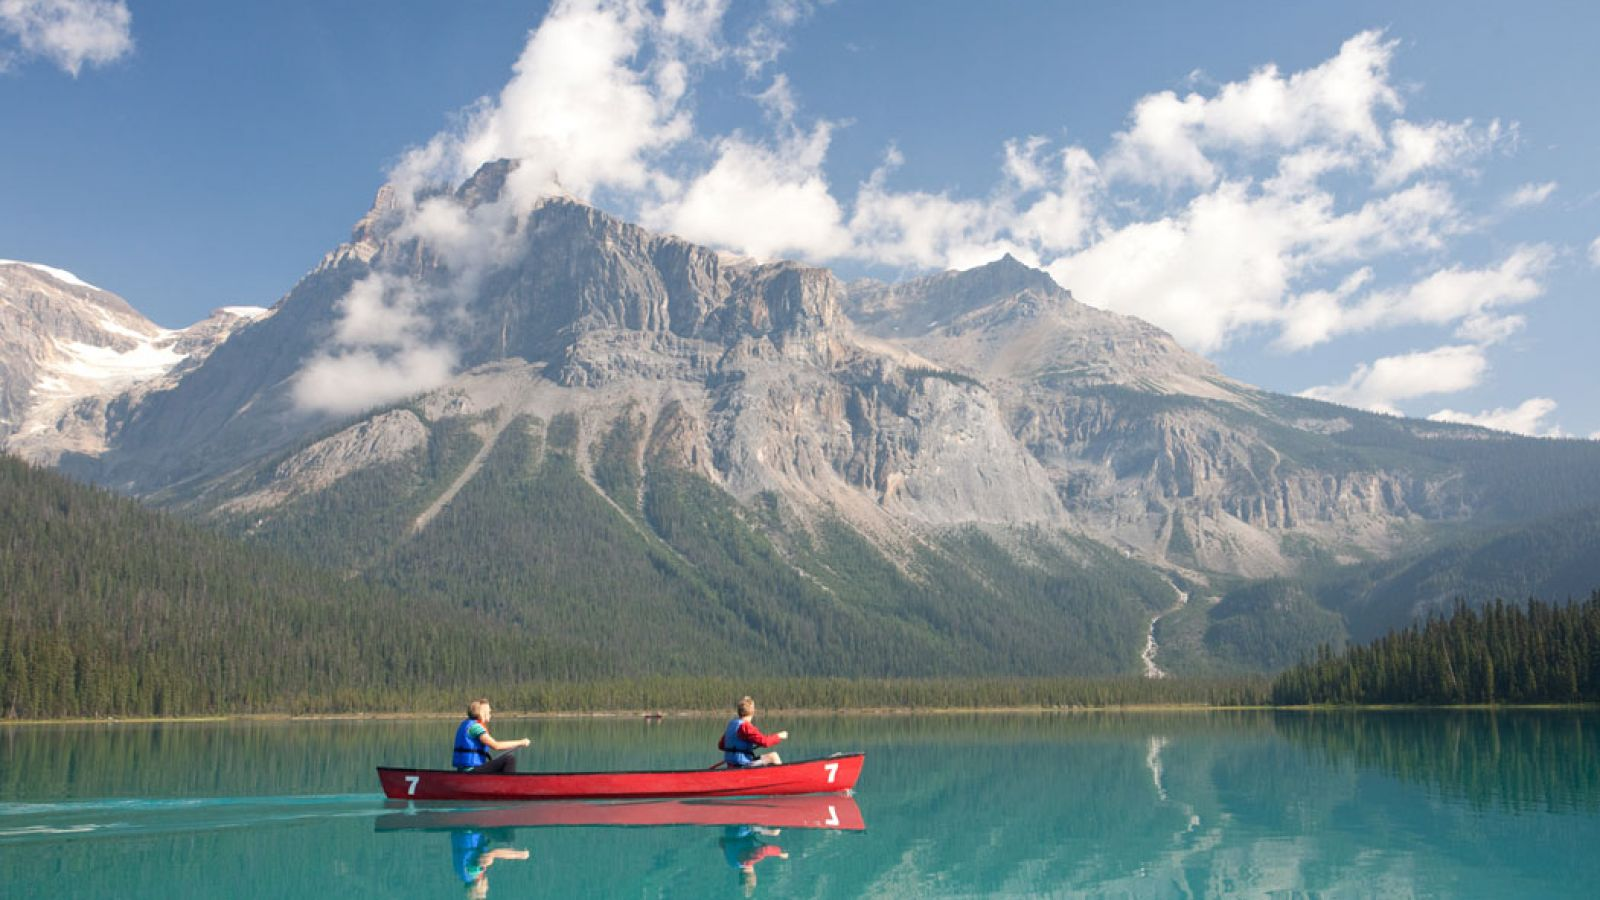 Canoeing Emerald Lake.